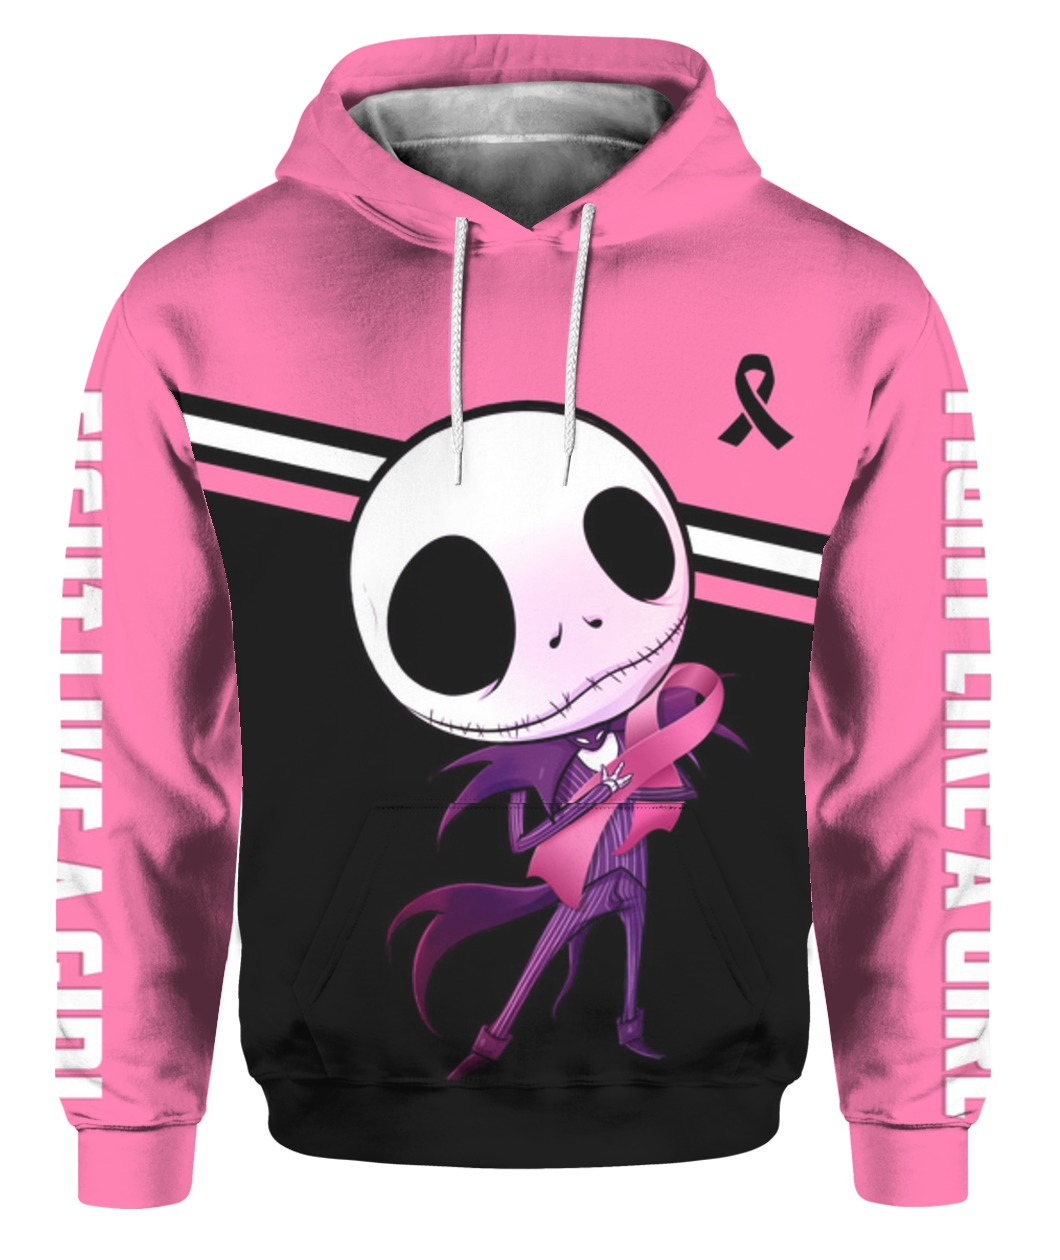 Baby jack skellington hugs ribbon breast cancer awareness all over printed hoodie - front